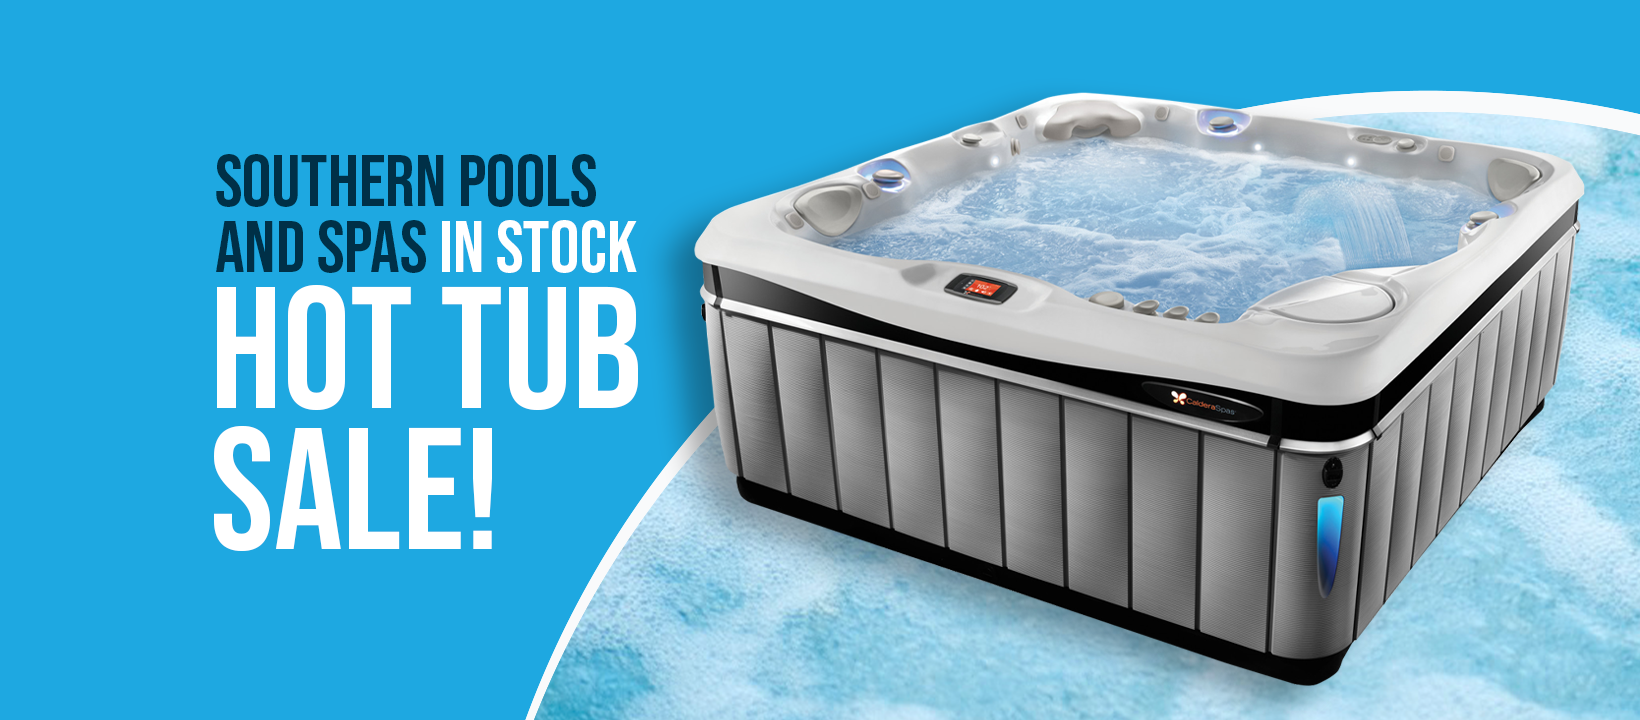 In Stock Hot Tub Sale!